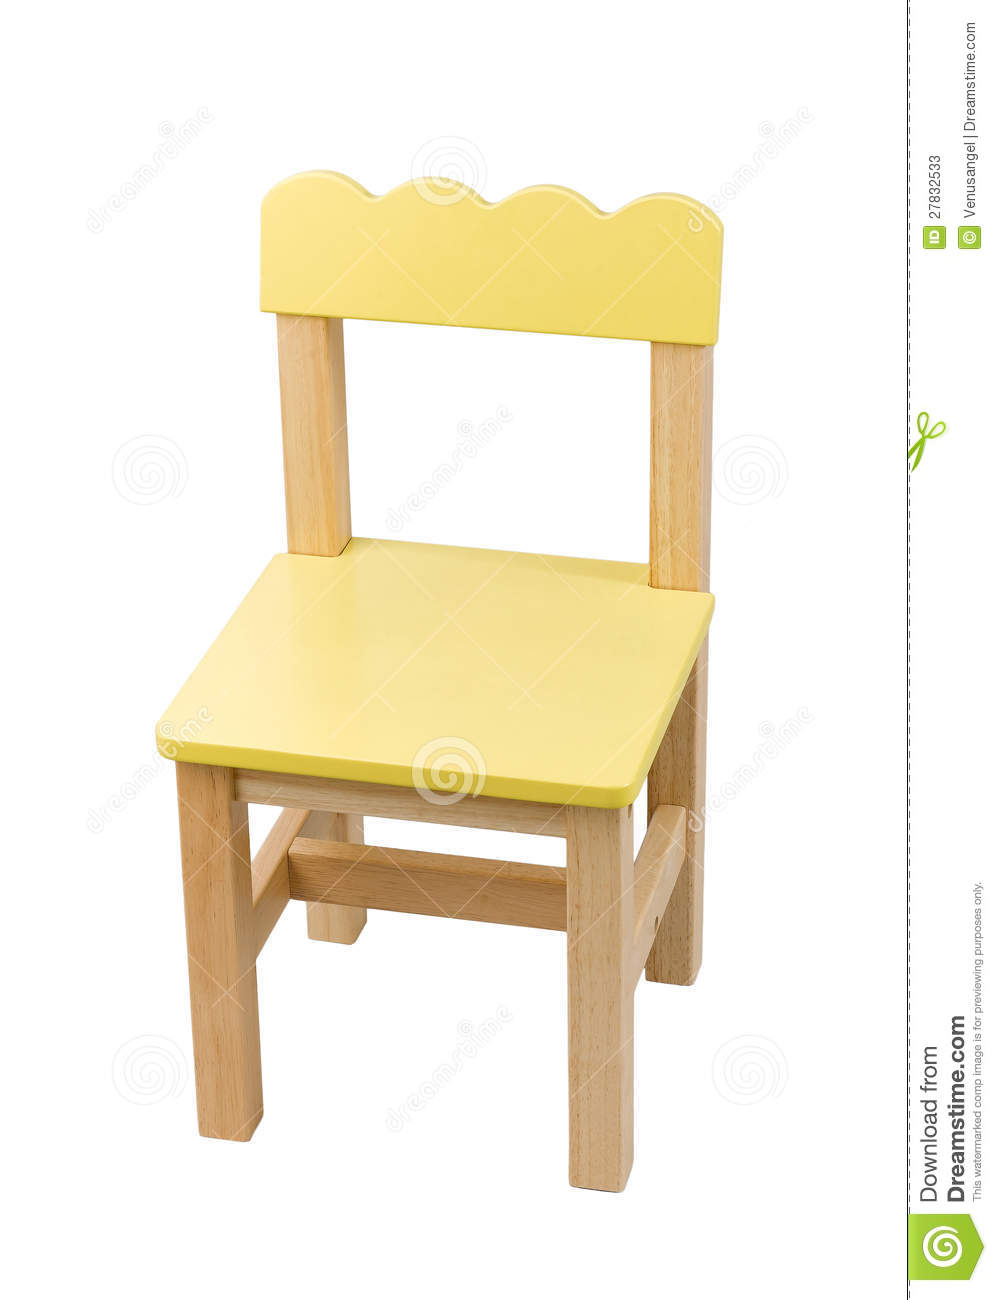 cute small chair for child stock image image of wooden 27832533